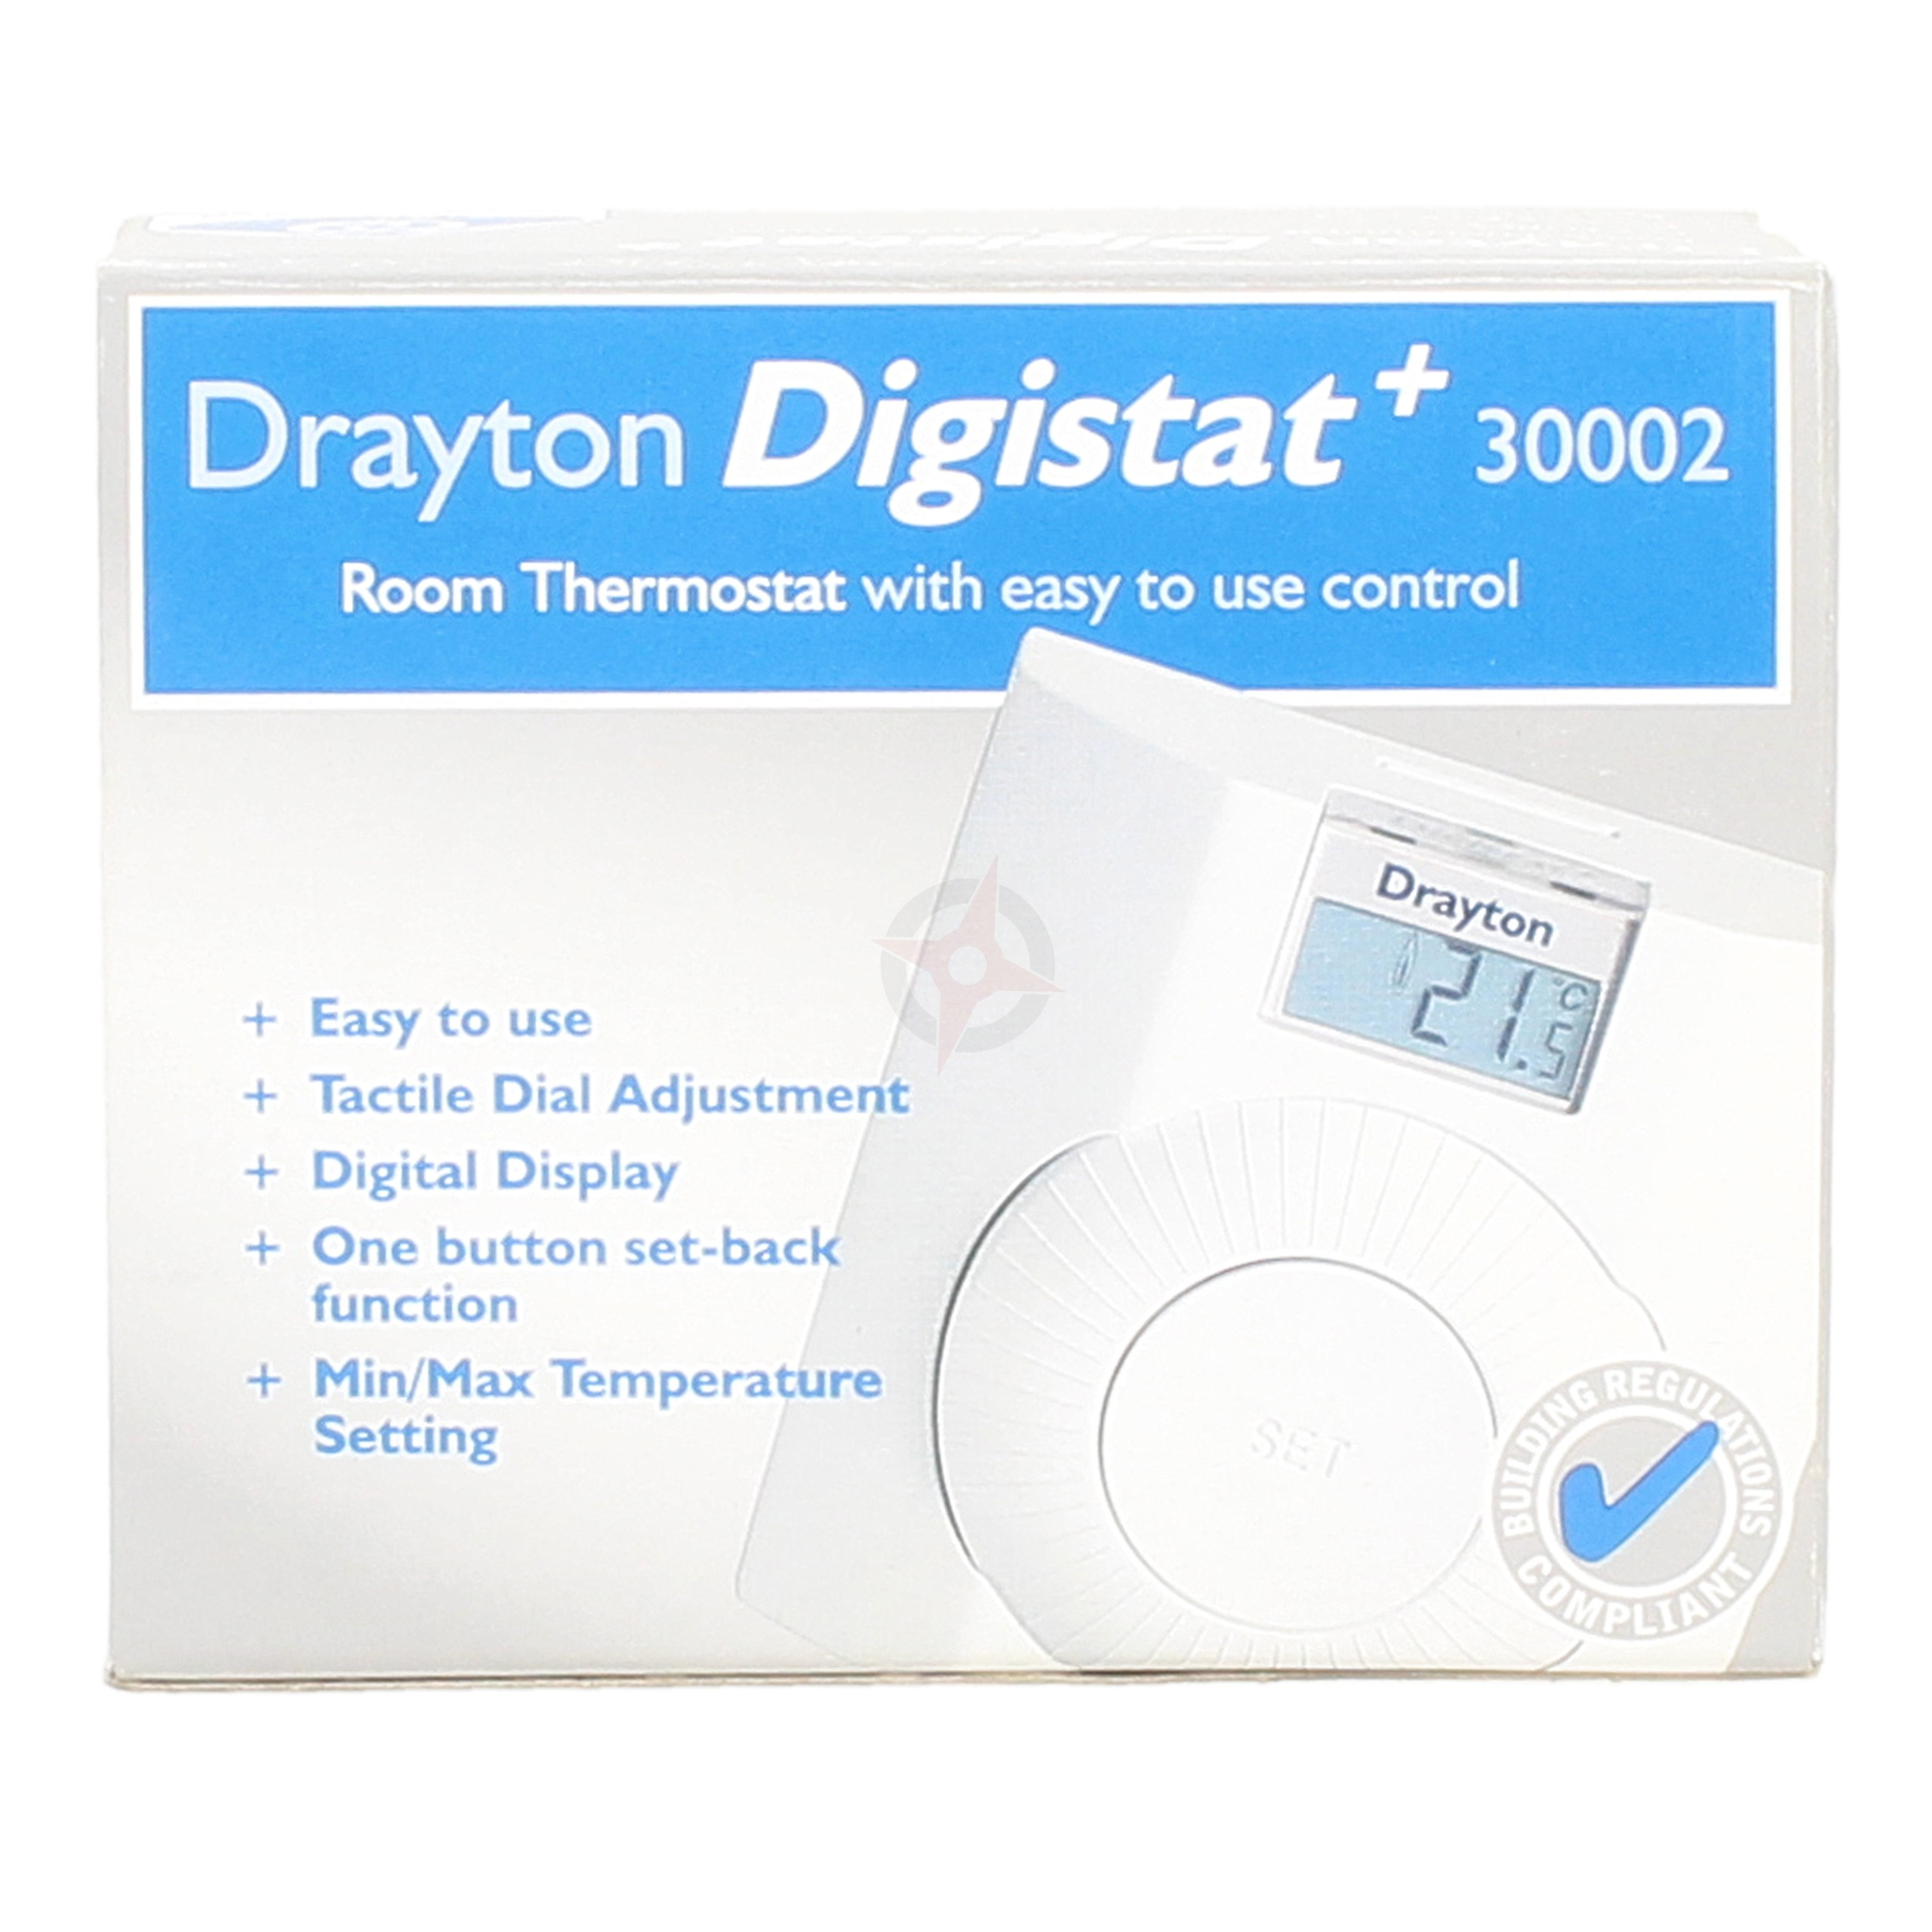 Drayton Room Thermostat Digistat+